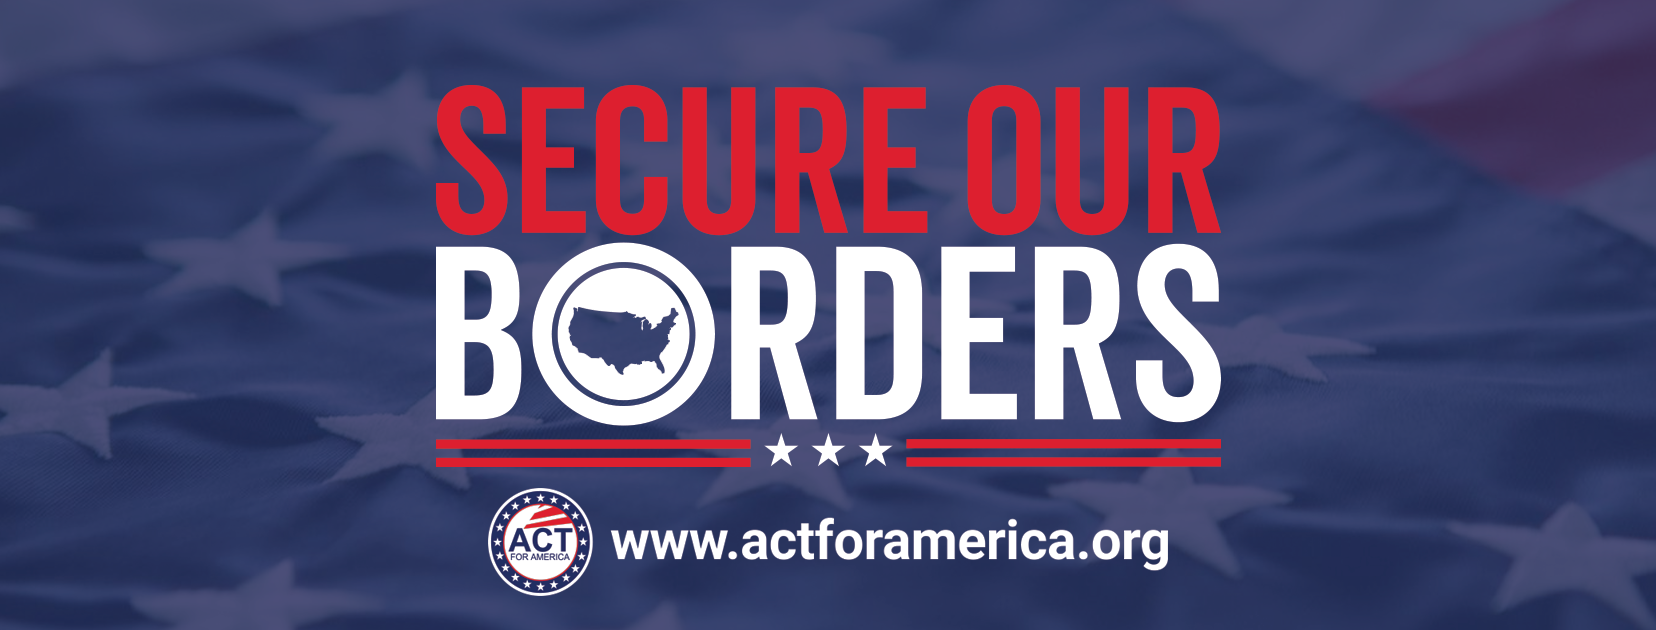 SecureOurBorders_fb_cover.png